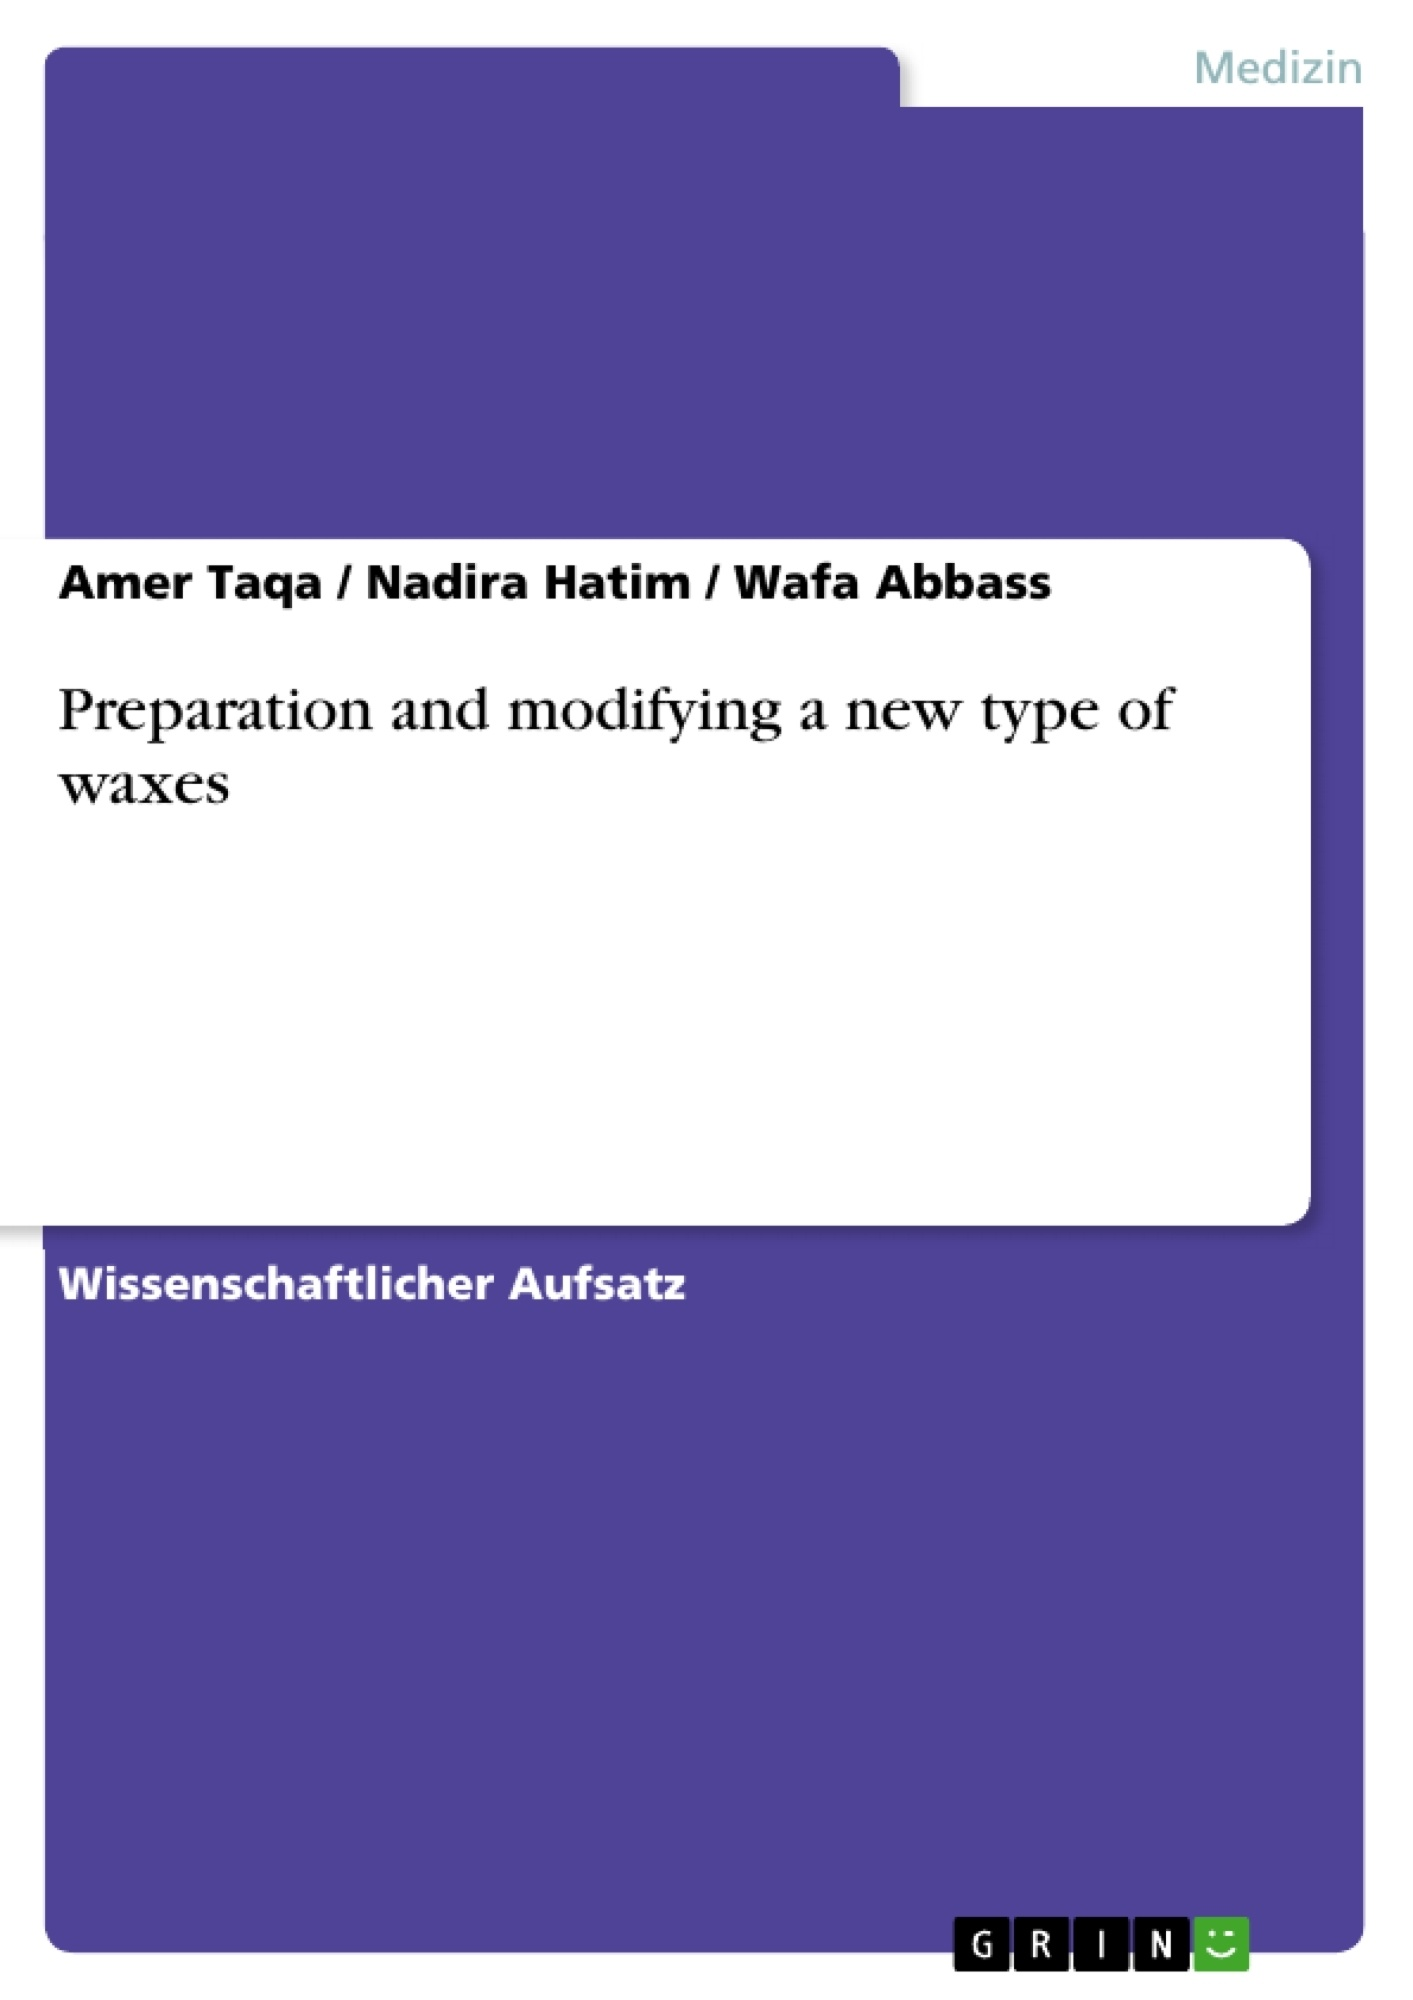 Titel: Preparation and modifying a new type of waxes